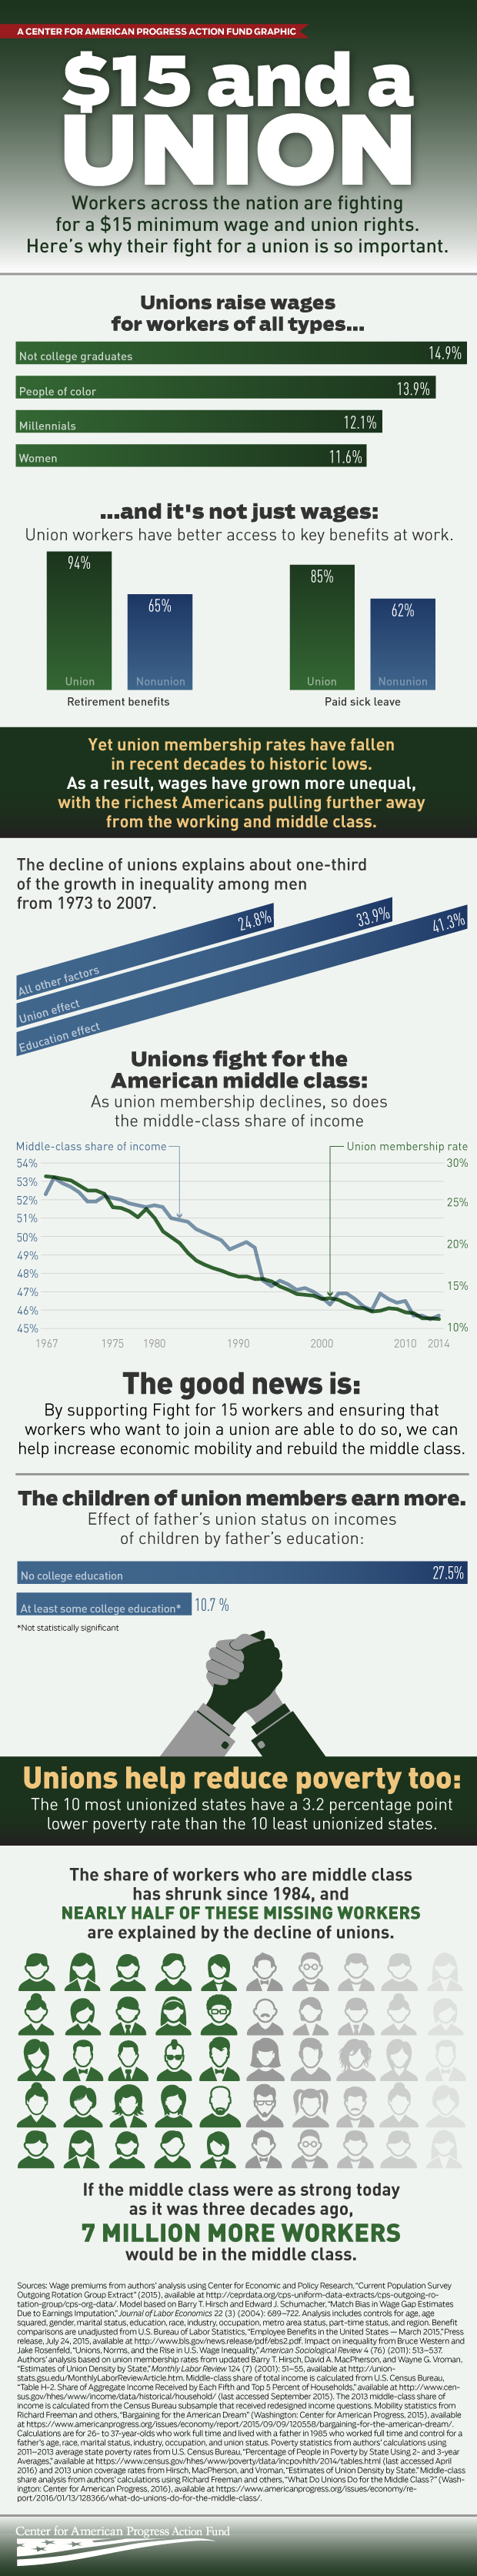 benefits of unions